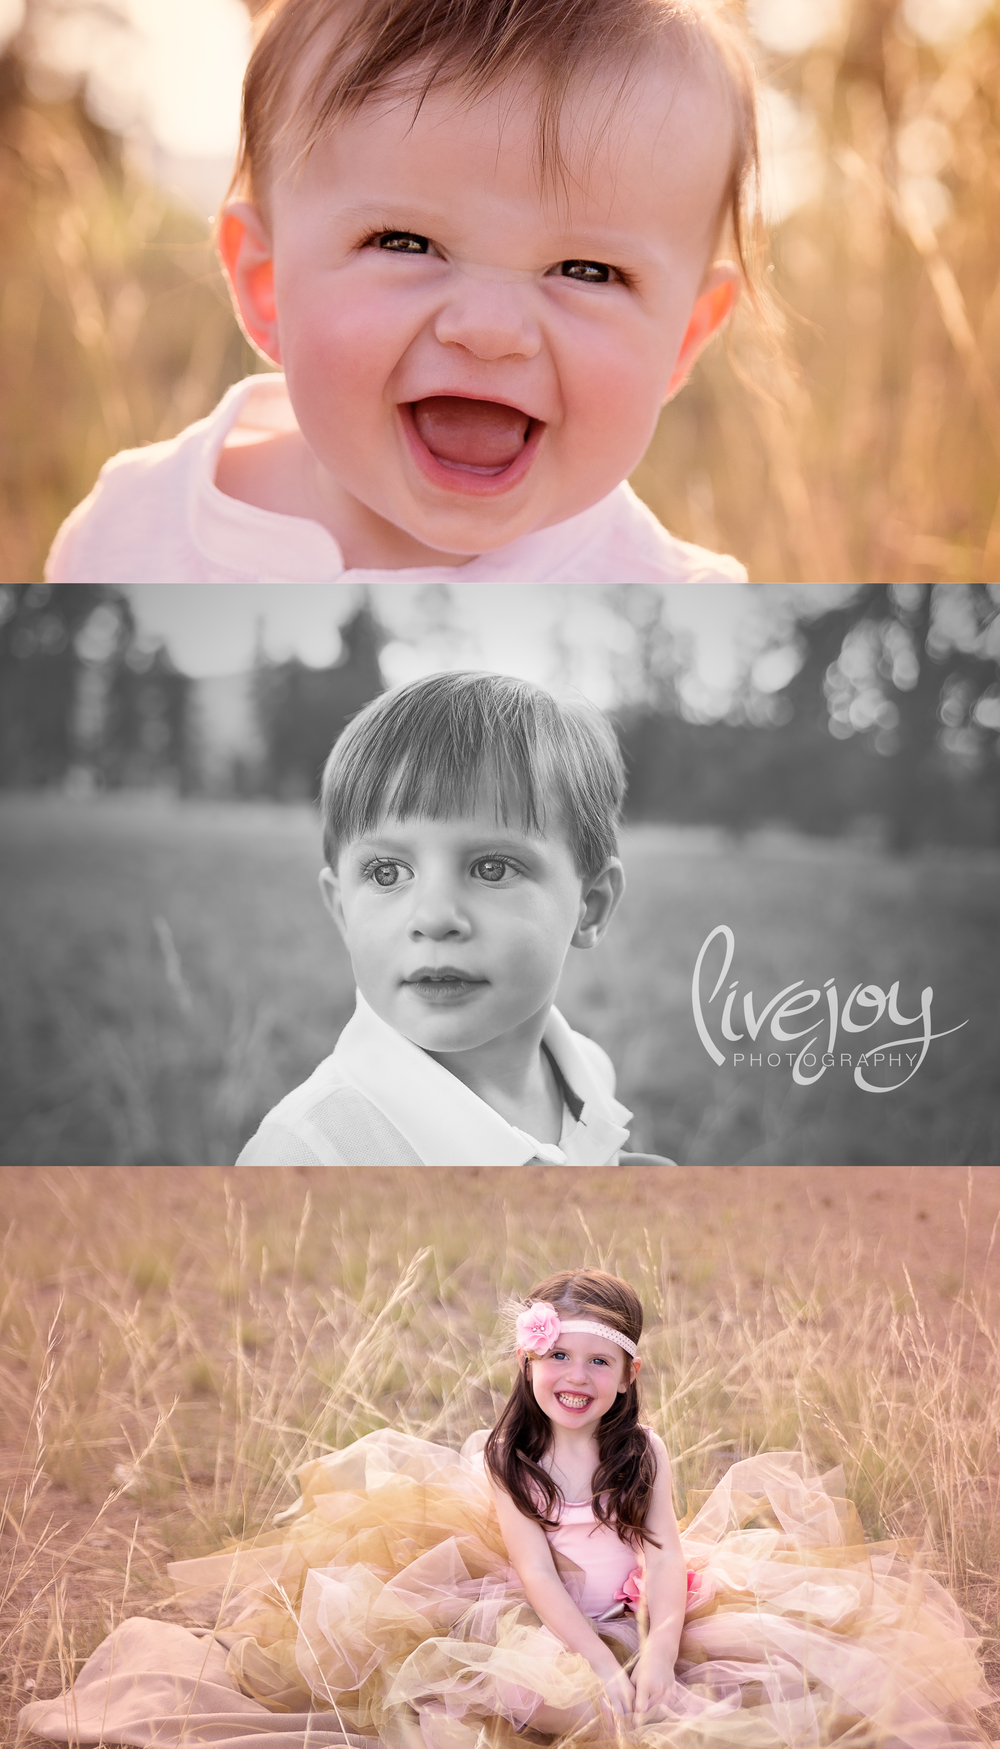 Family Photography | LiveJoy Photography